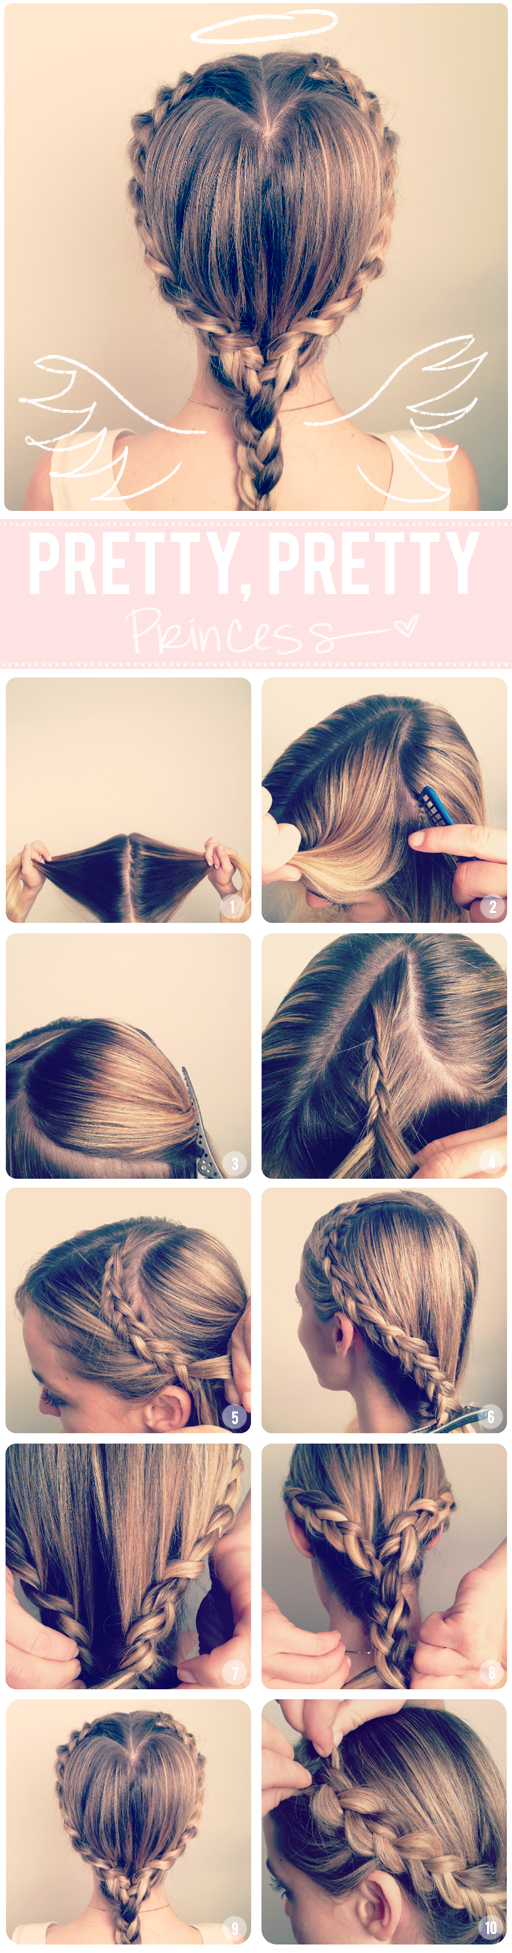 DIY Heart Braid Hairstyle Over